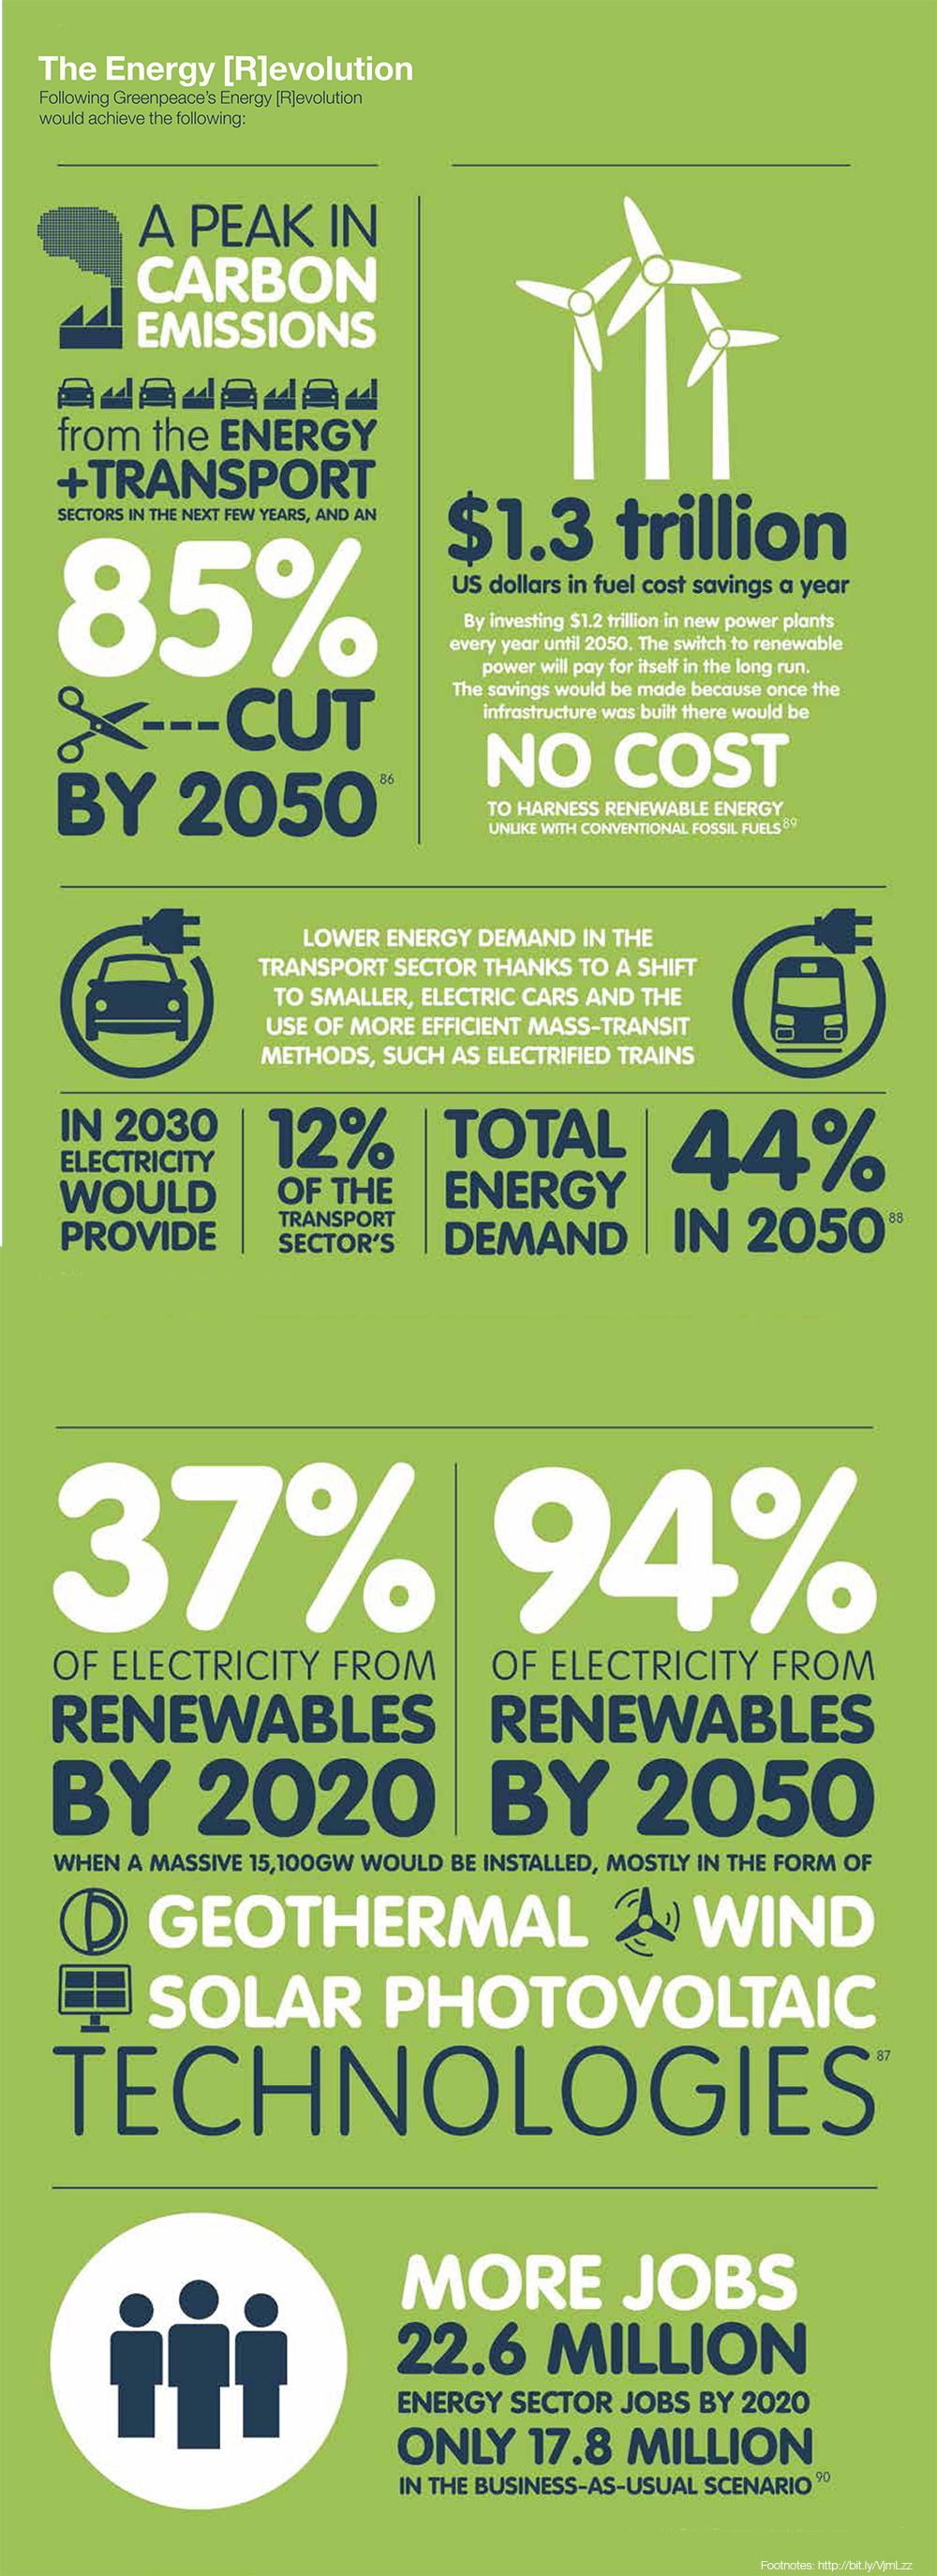 Greenpeace Energy [R]evolution infographic: how to stop ...